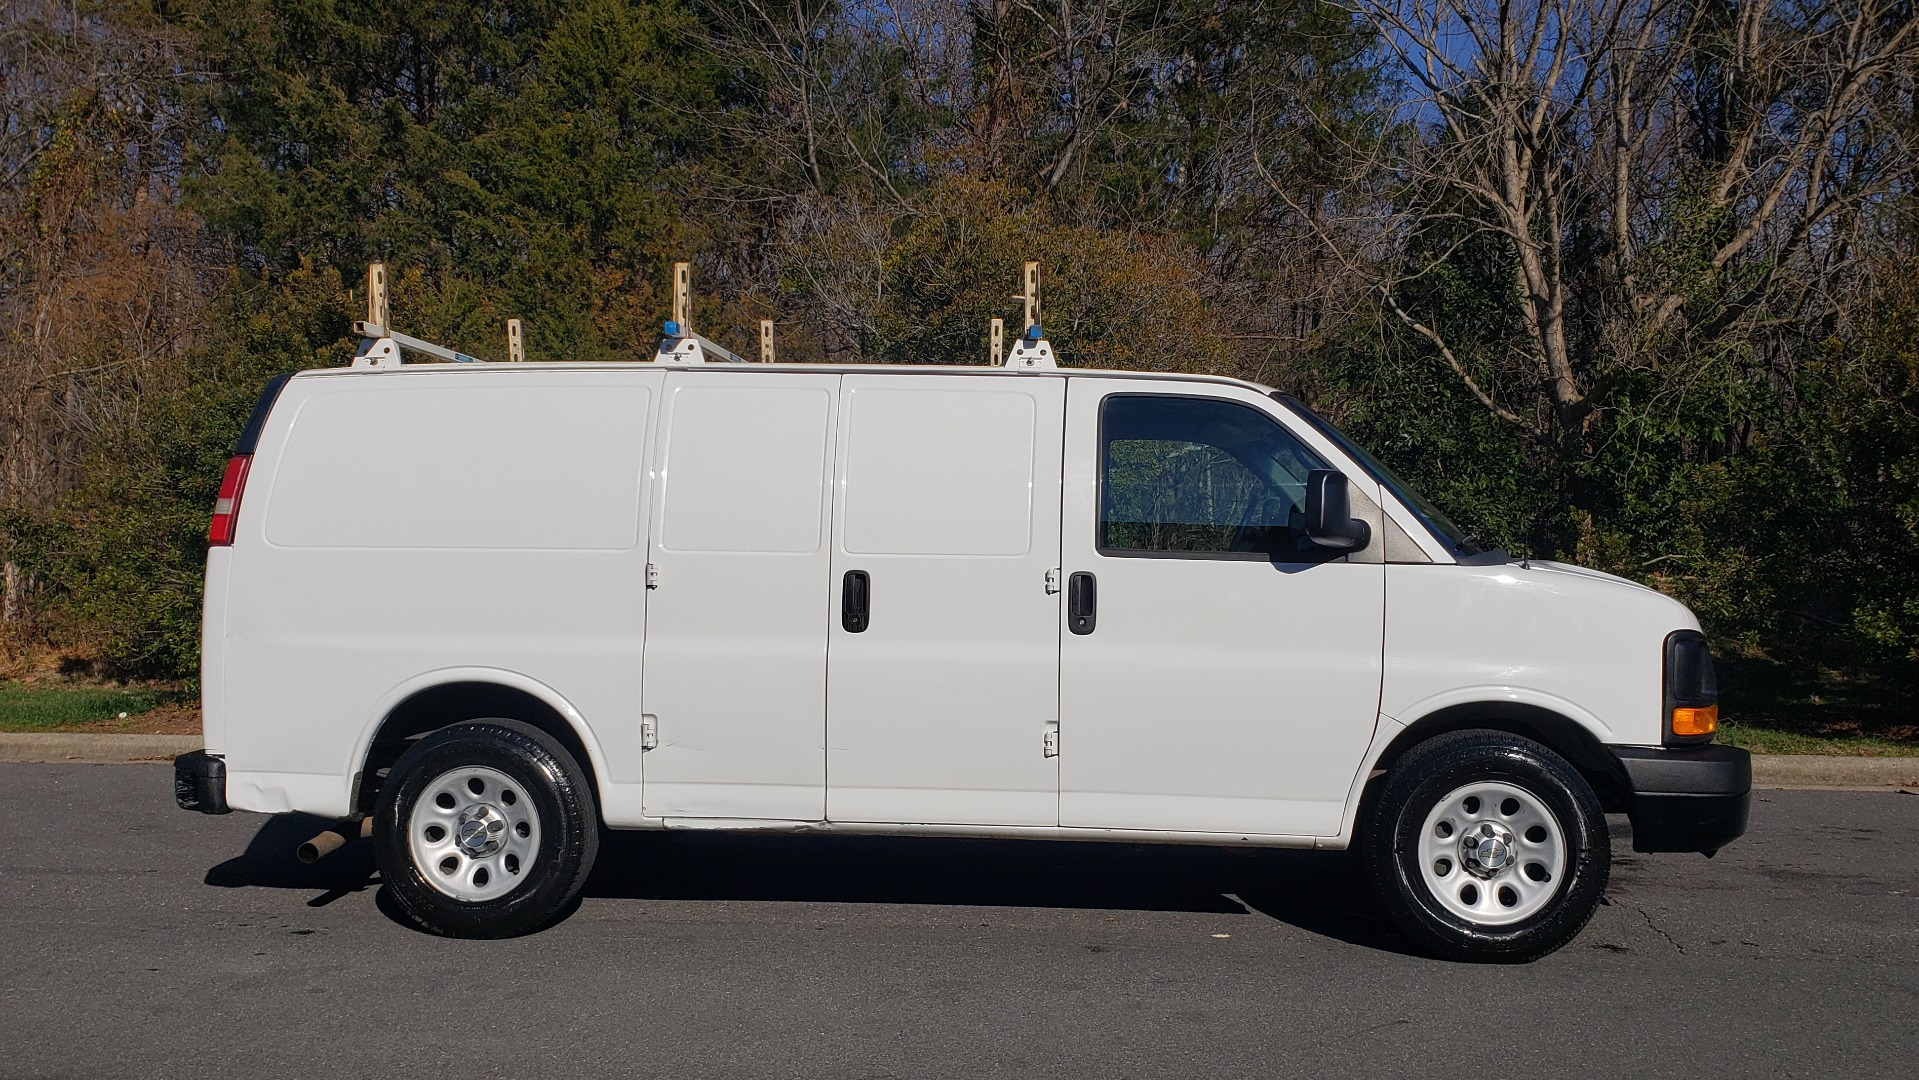 Used 2012 Chevrolet EXPRESS WORK VAN 1500 / 135 WB / 4.3L V6 / 4-SPD AUTO / ROOF RACK for sale $11,600 at Formula Imports in Charlotte NC 28227 5